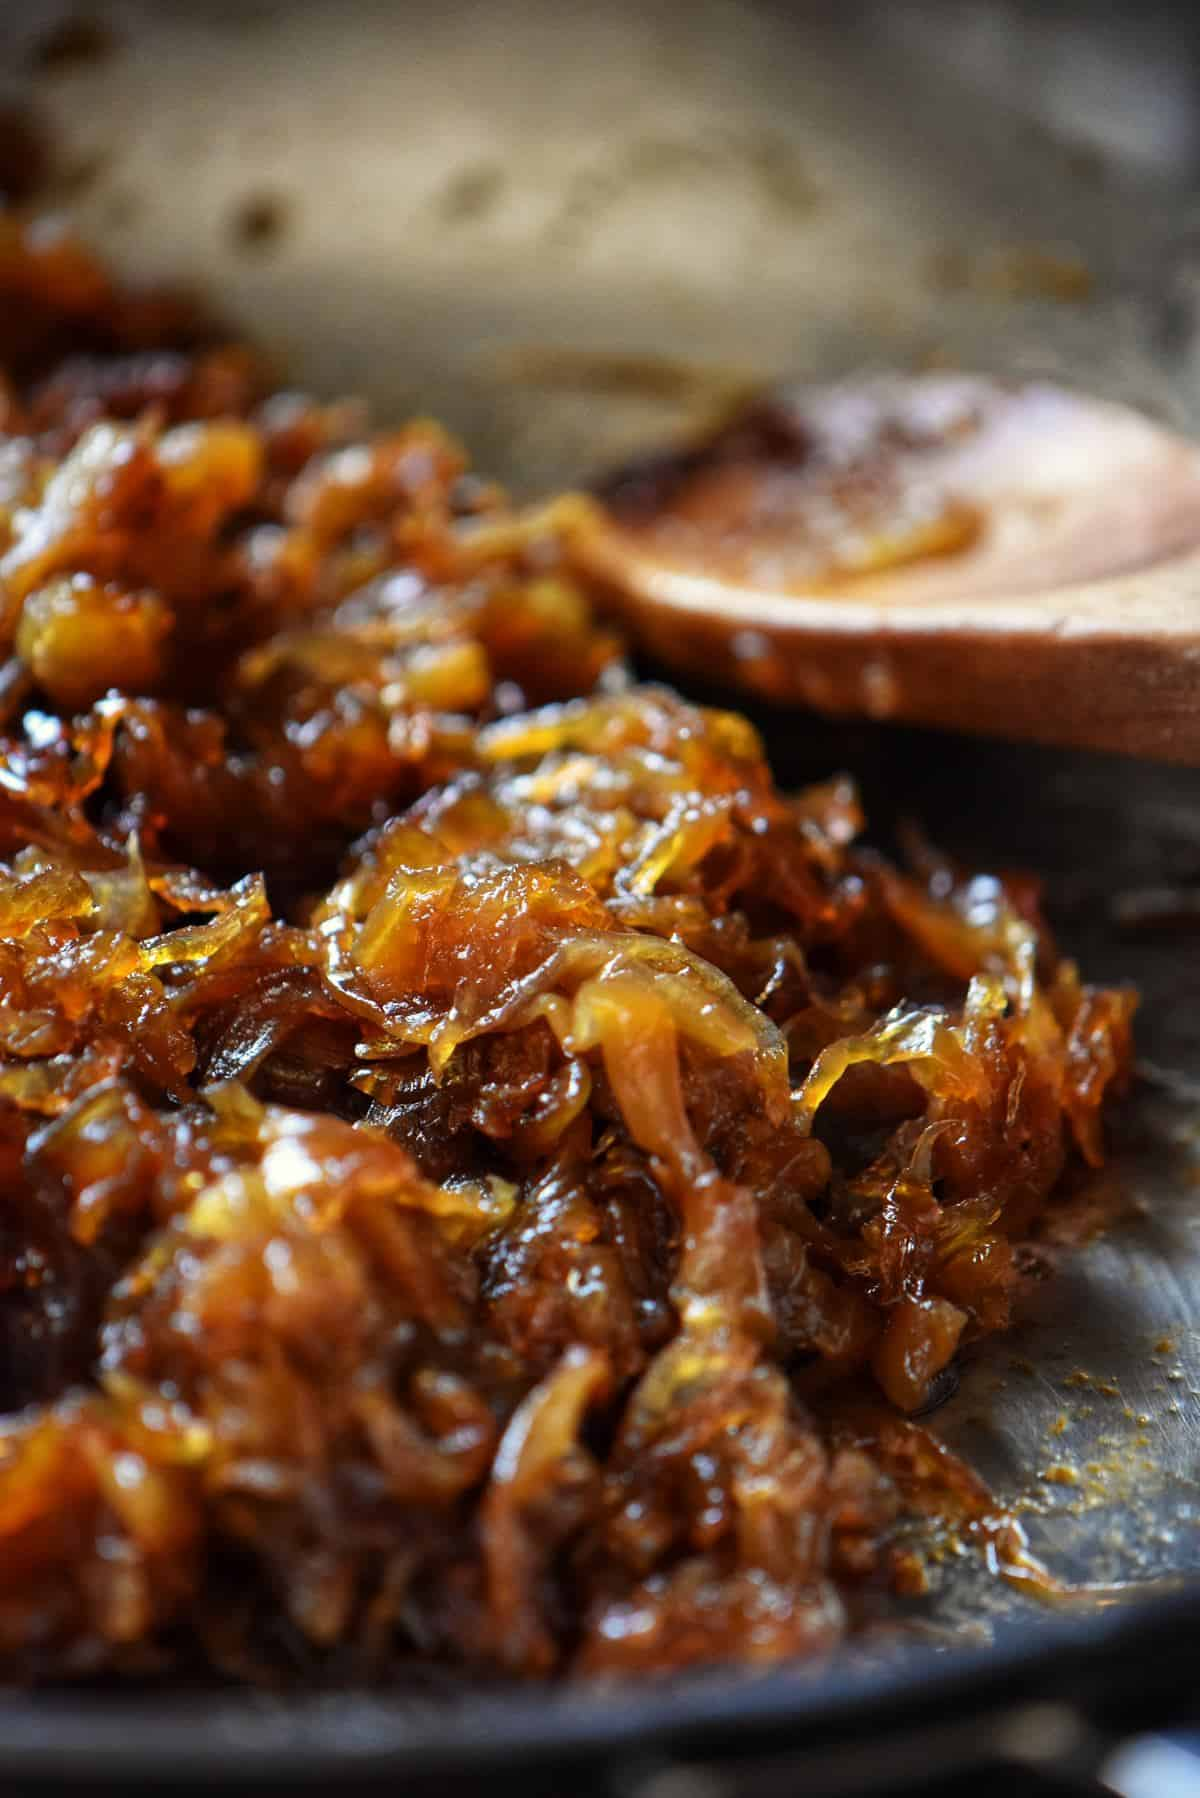 Golden brown caramelized onions in a heavy skillet.